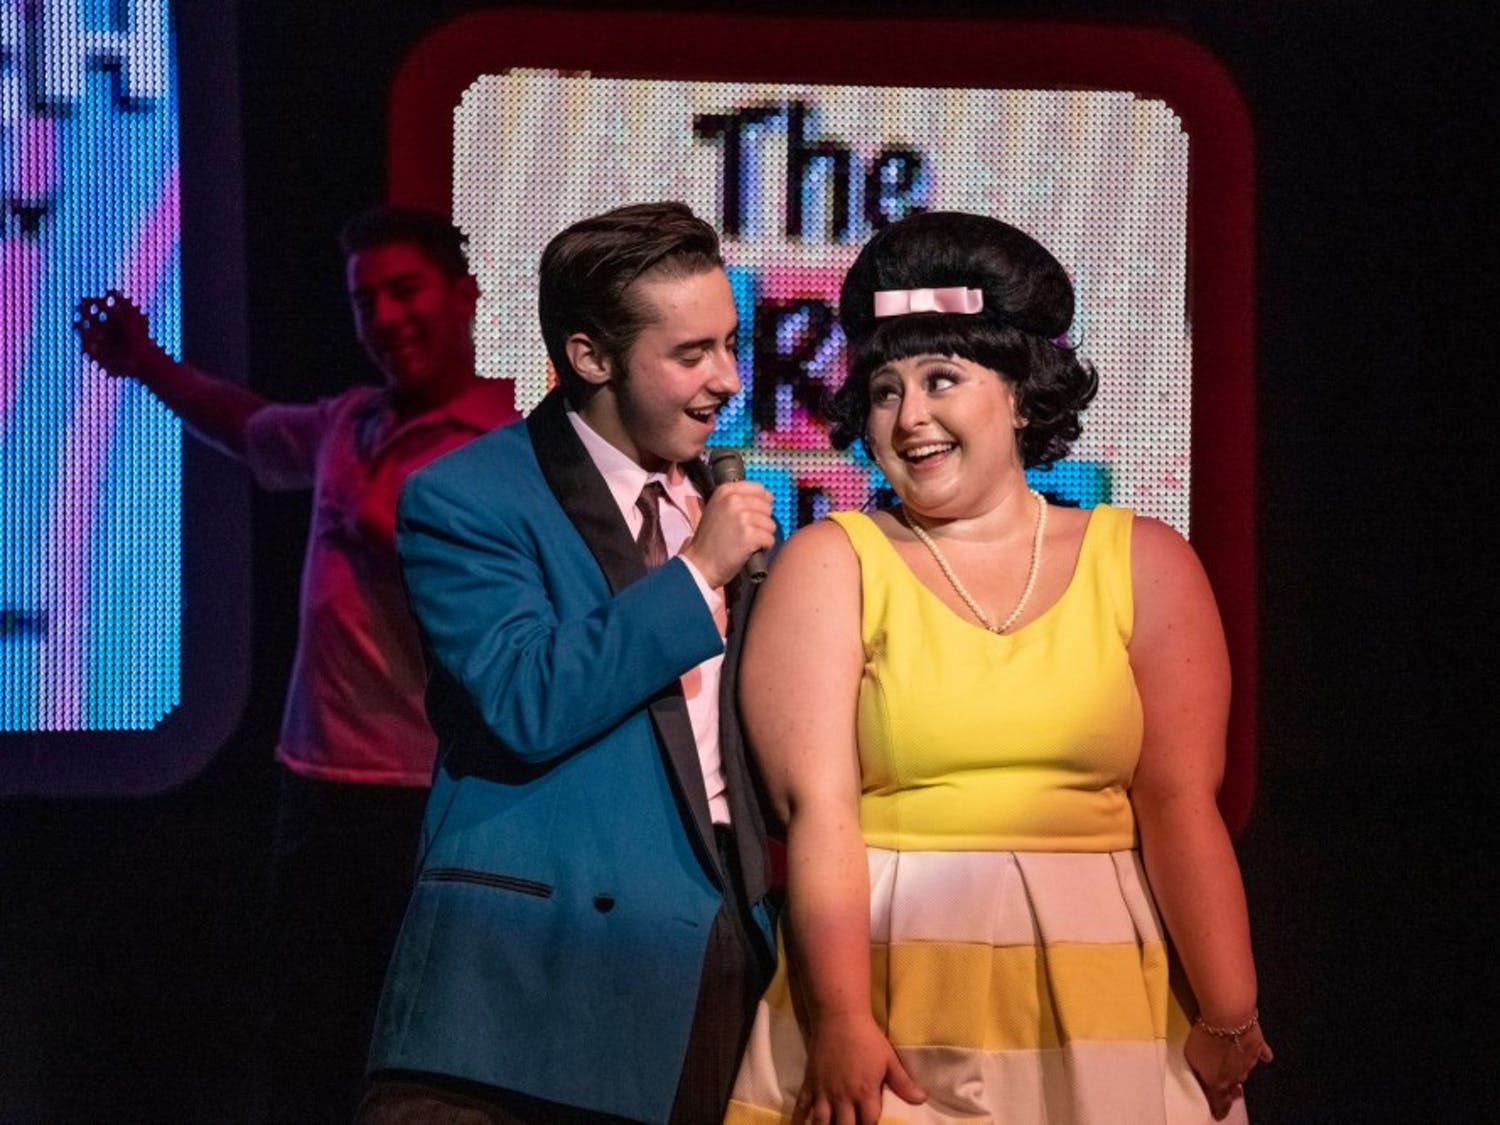 Stills from the production of Hairspray now showing at The Kavinoky Theatre.